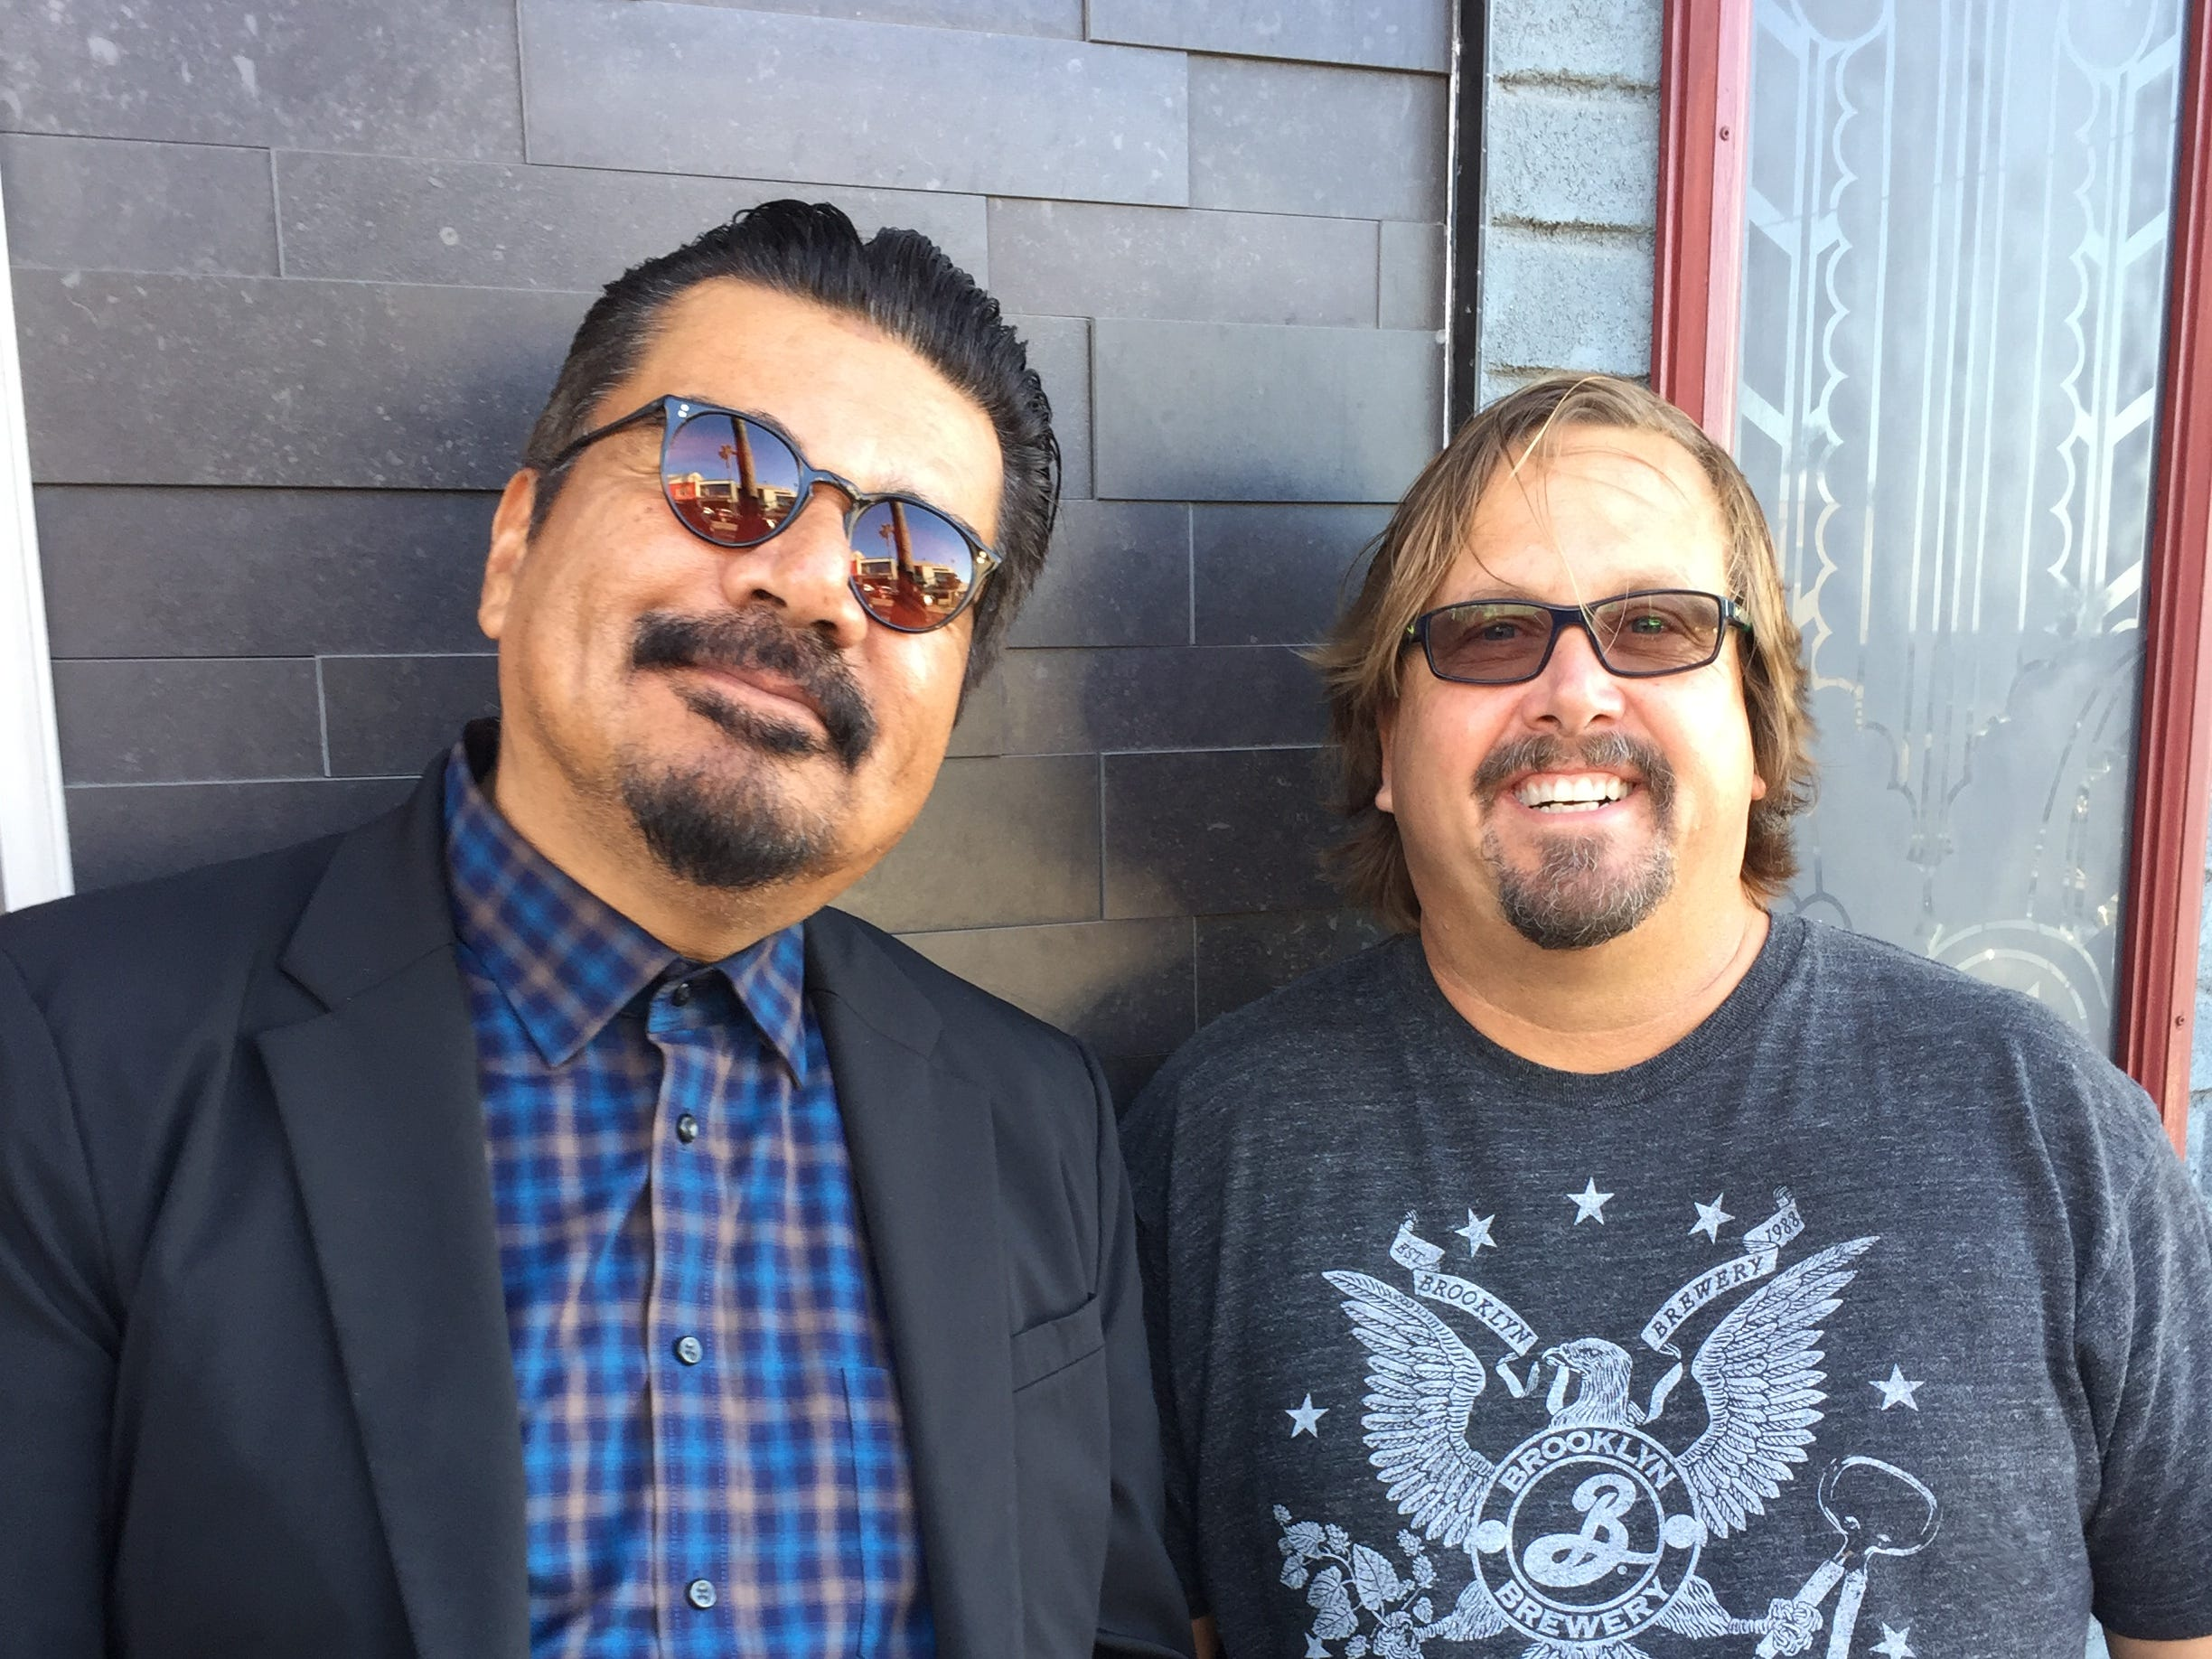 Comedian and actor George Lopez (left) and restaurant industry entrepreneur and hotelier Michael Zislis of the Zislis Group have teamed to create George Lopez's Chingon Kitchen, which will open at Vee Quiva Hotel & Casino in May.